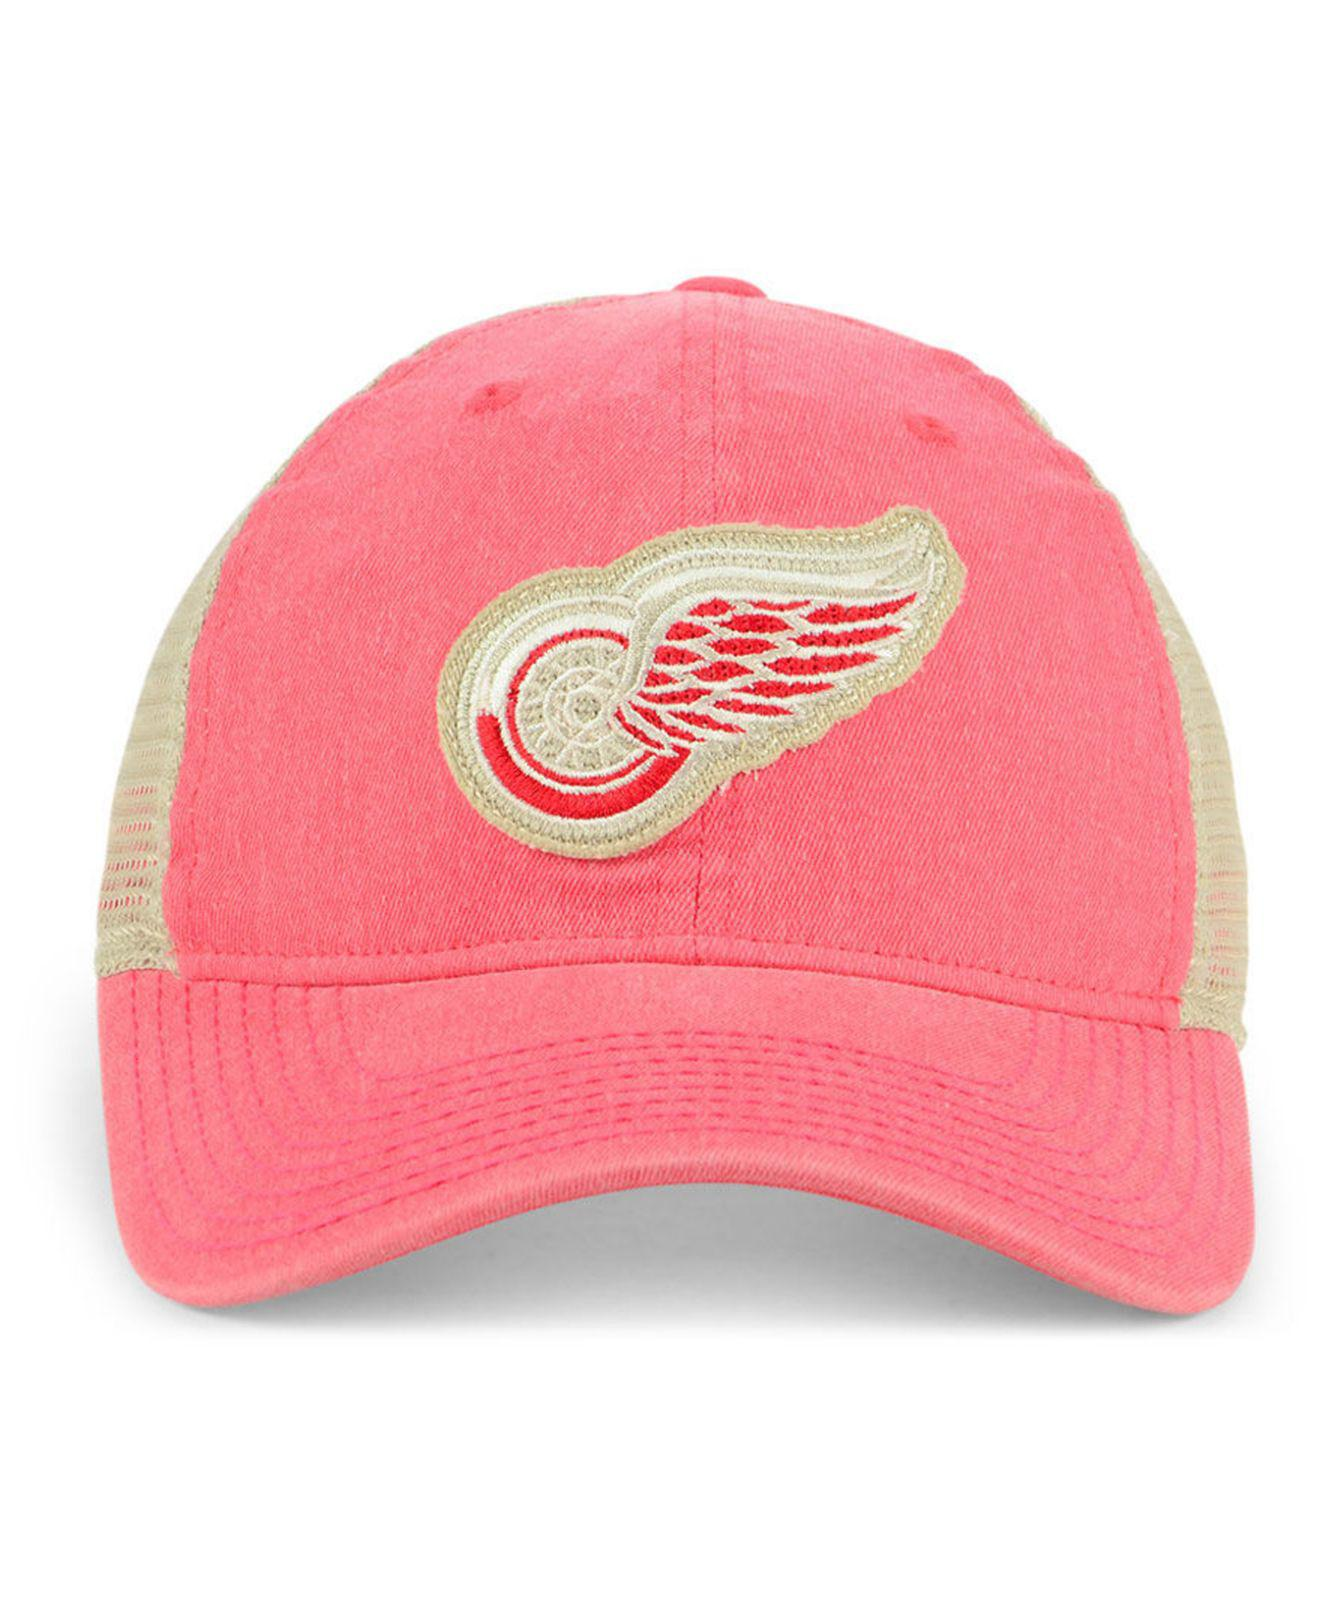 buy popular c14fd 1a450 ... hot lyst adidas detroit red wings sun bleached slouch cap in red for  men 45582 3a639